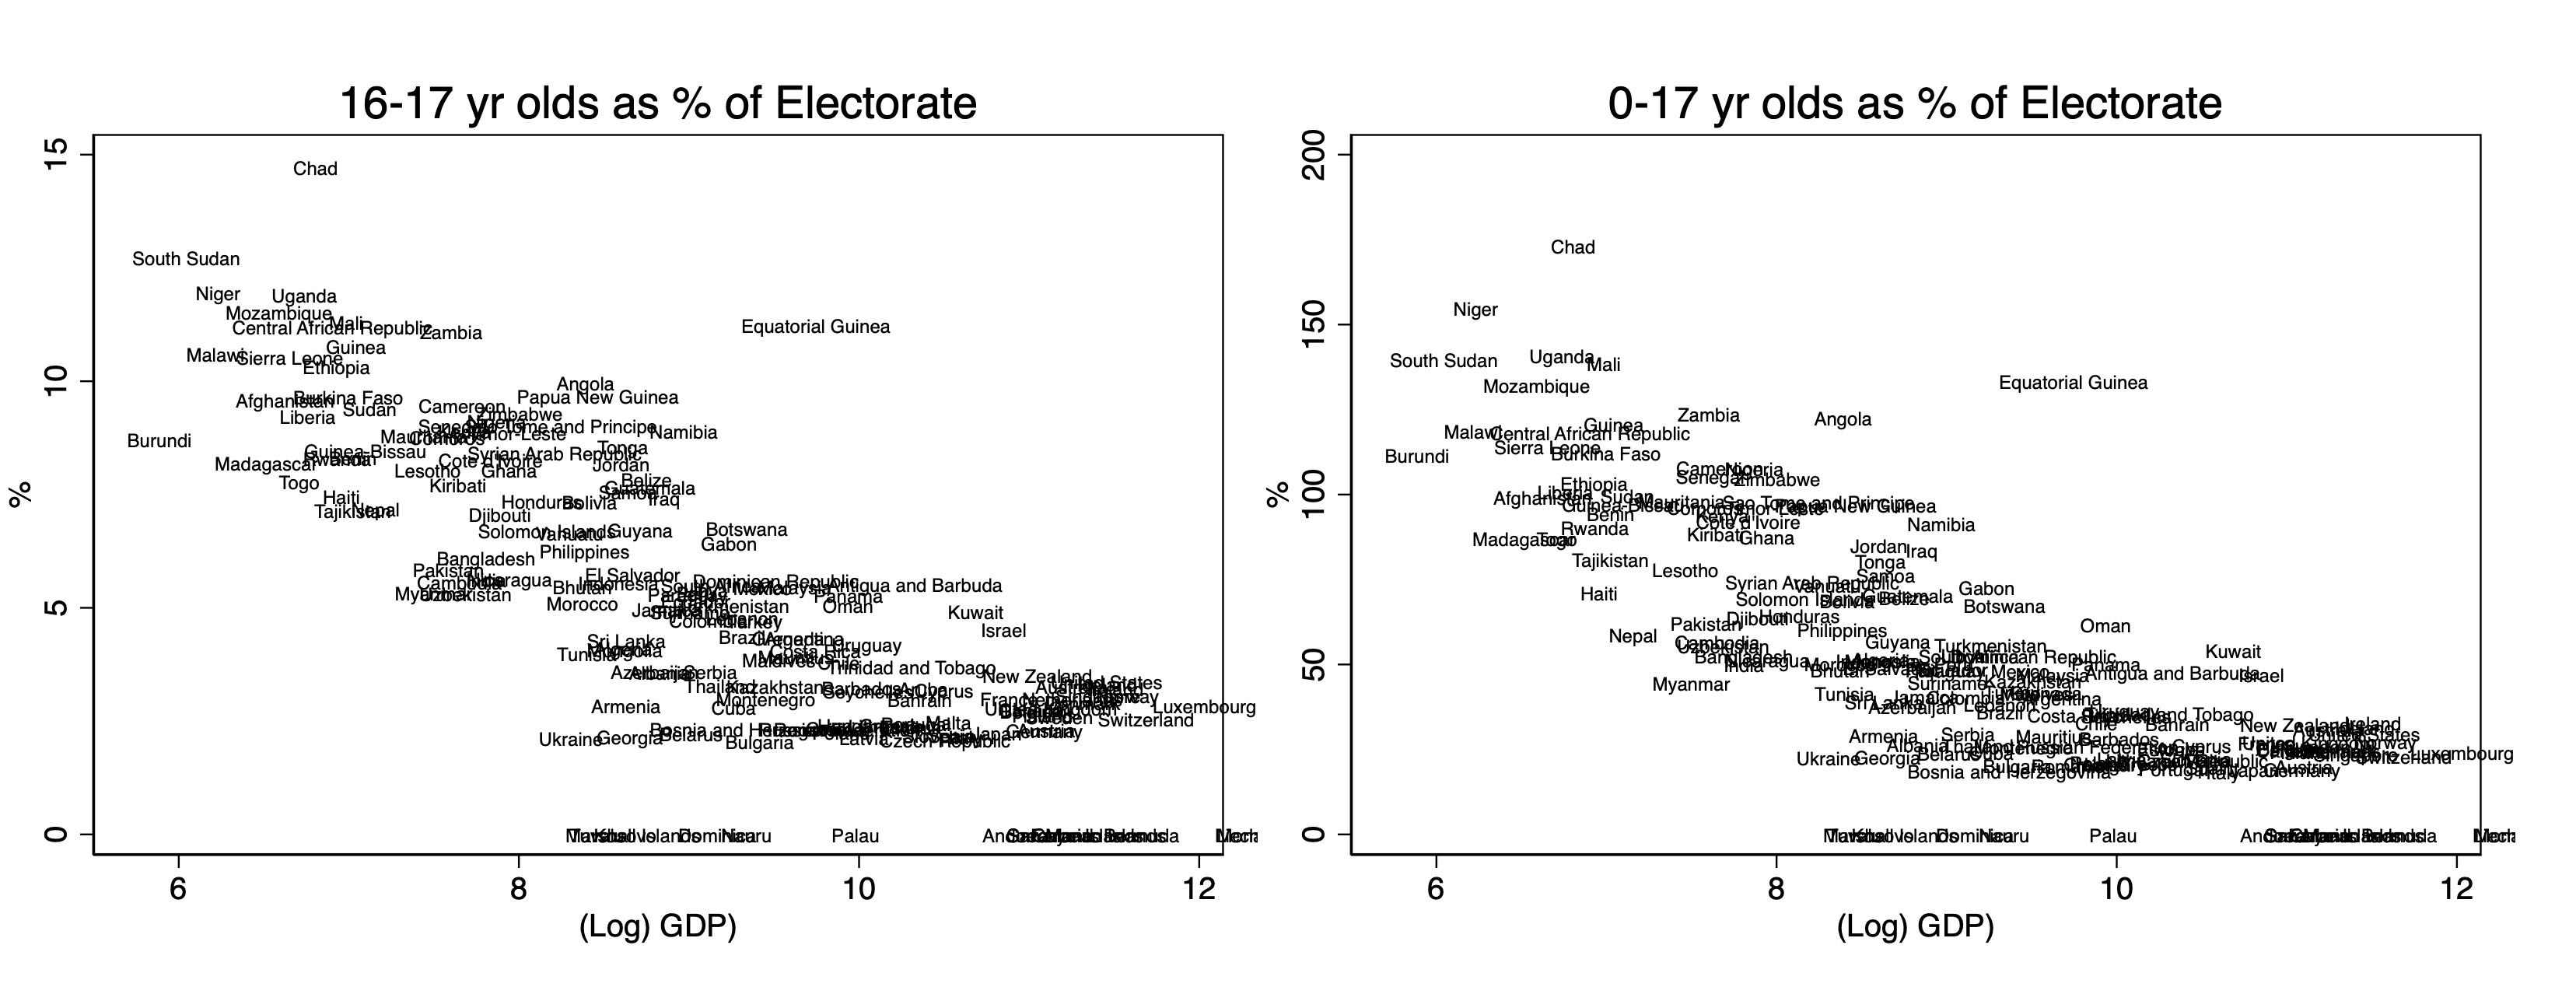 Age ranges as percentages of electorate